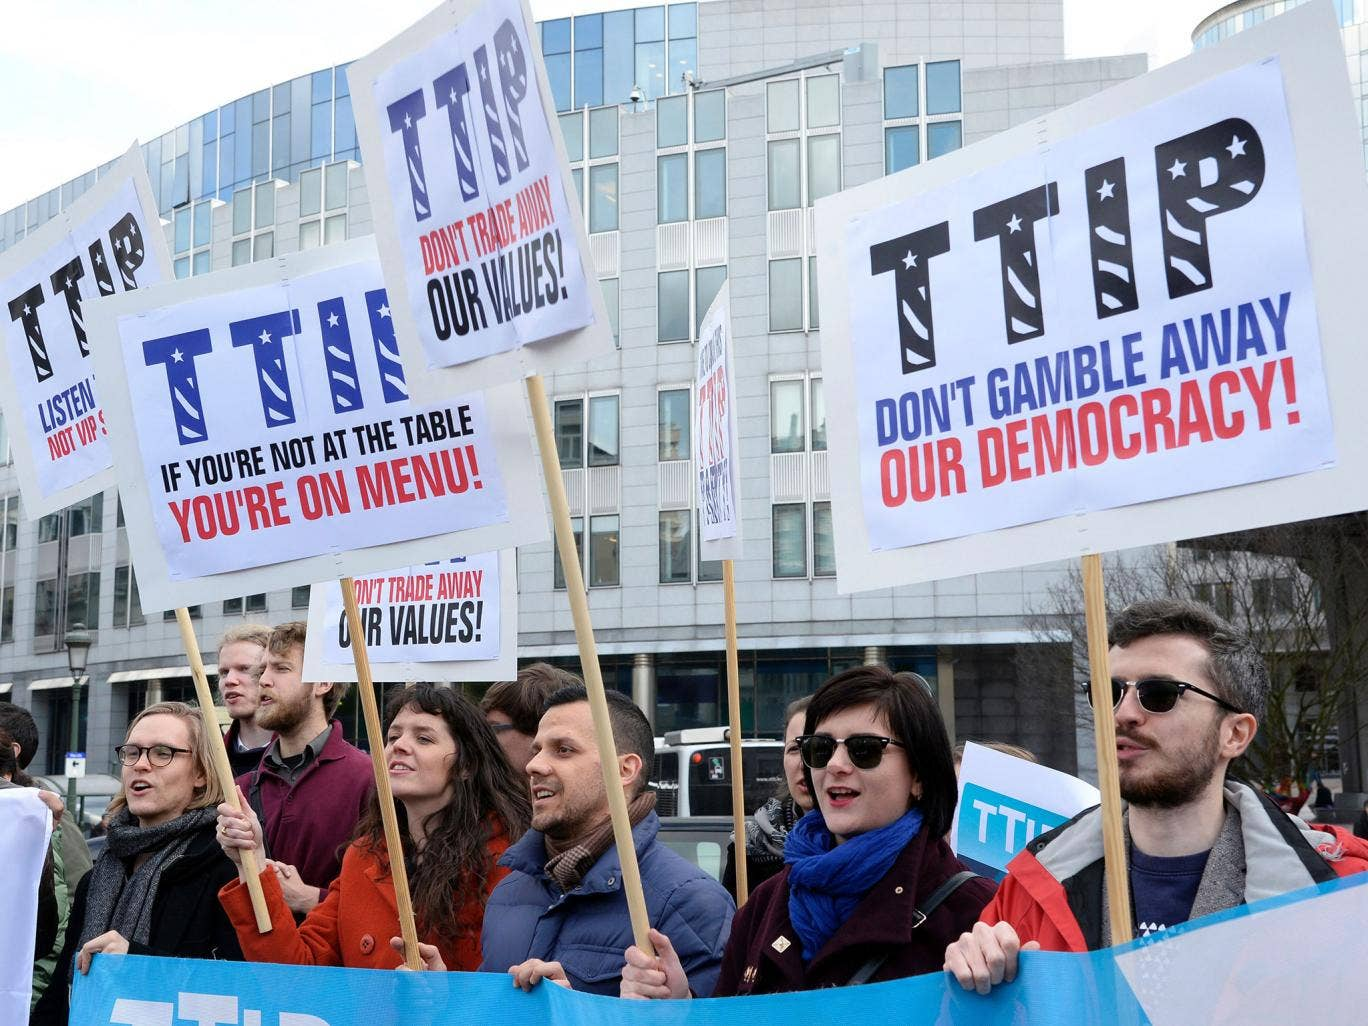 Protests over the TTIP